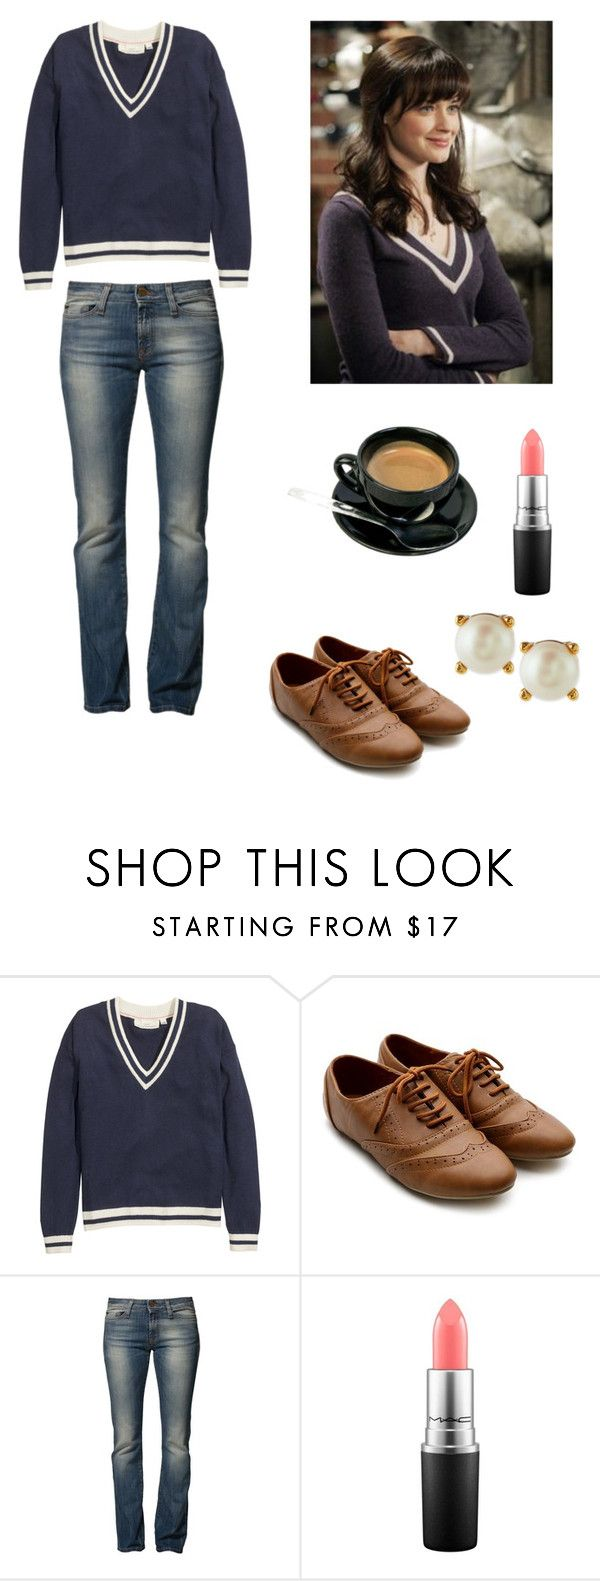 """Rory Gilmore"" by class-and-style ❤ liked on Polyvore featuring H&M, Ollio, Miss Sixty, MAC Cosmetics and Kate Spade"